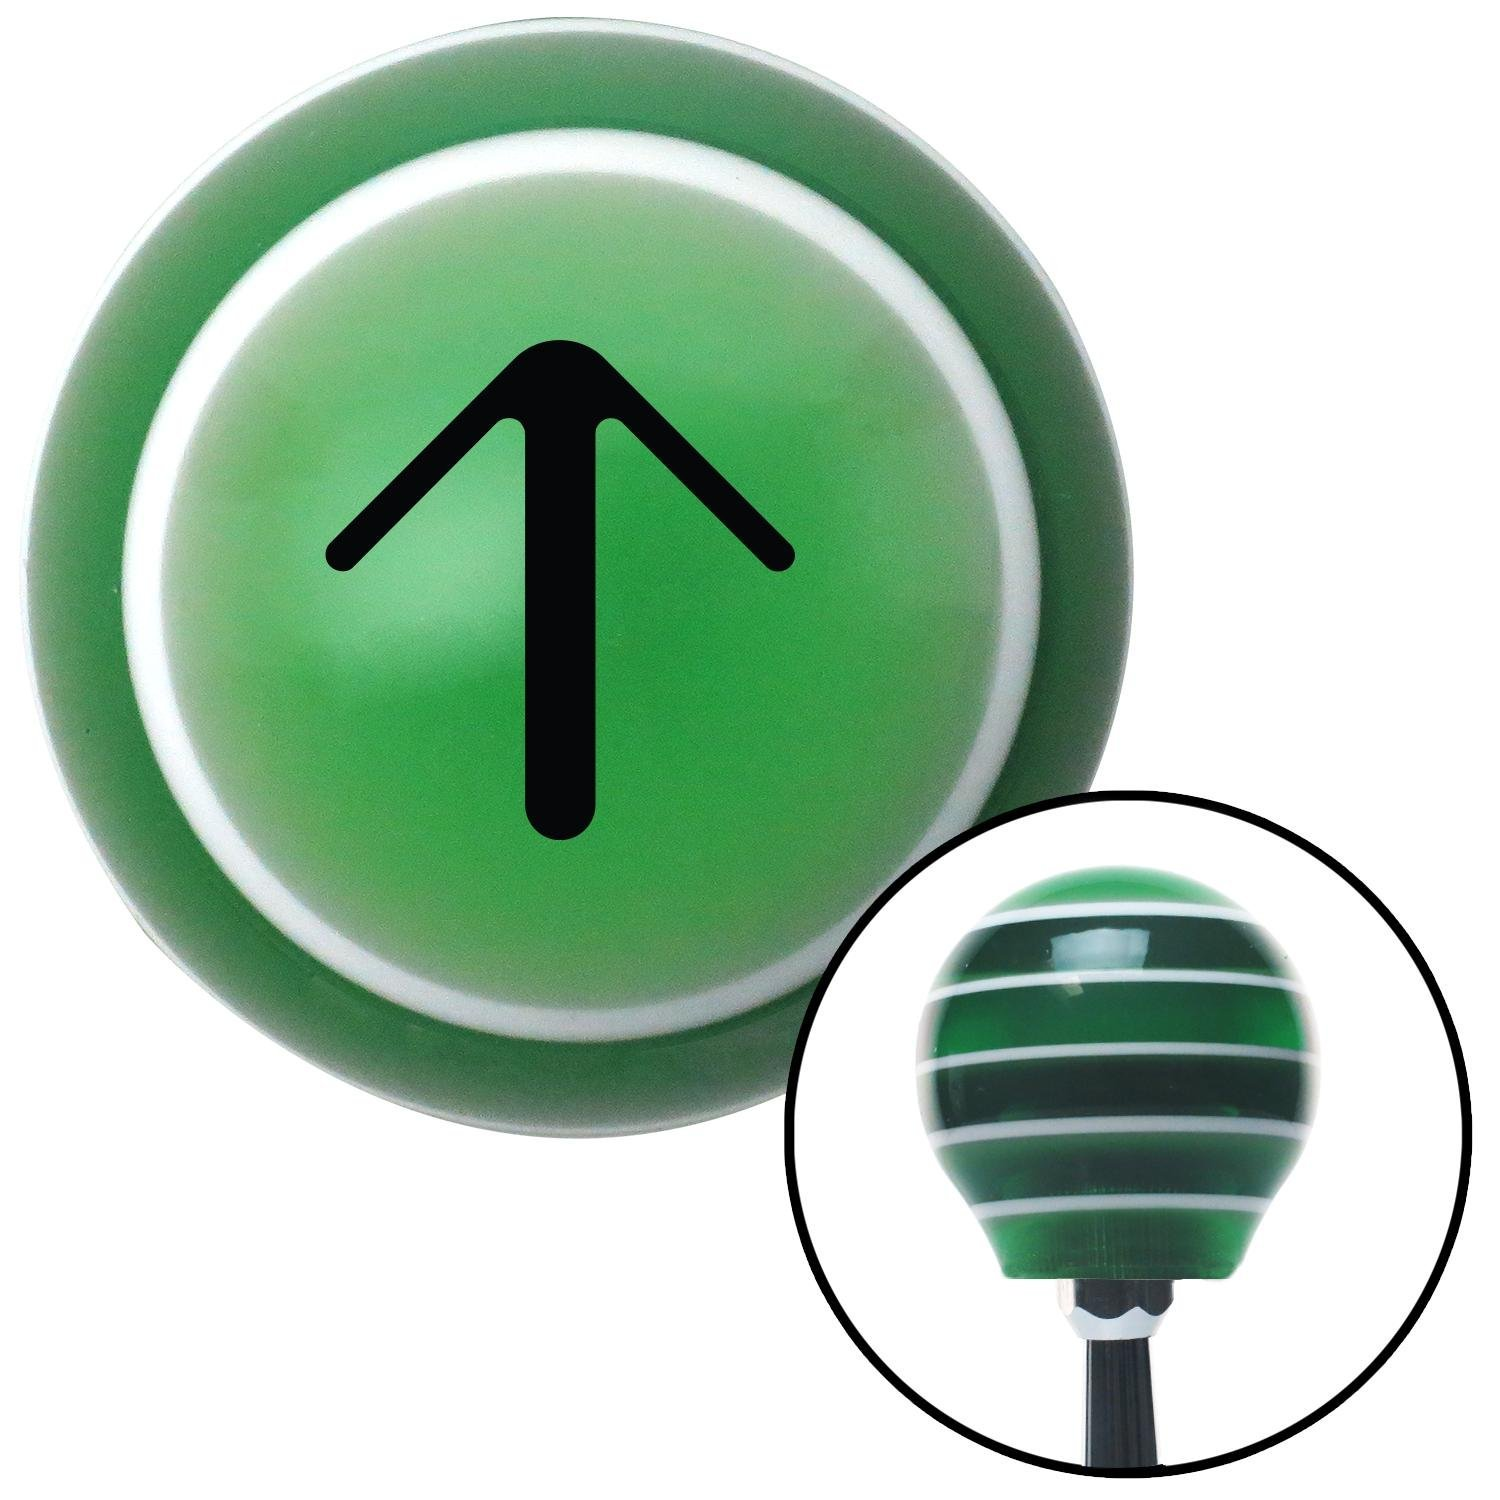 American Shifter 121394 Green Stripe Shift Knob with M16 x 1.5 Insert Black Solid Pointing Arrow Up